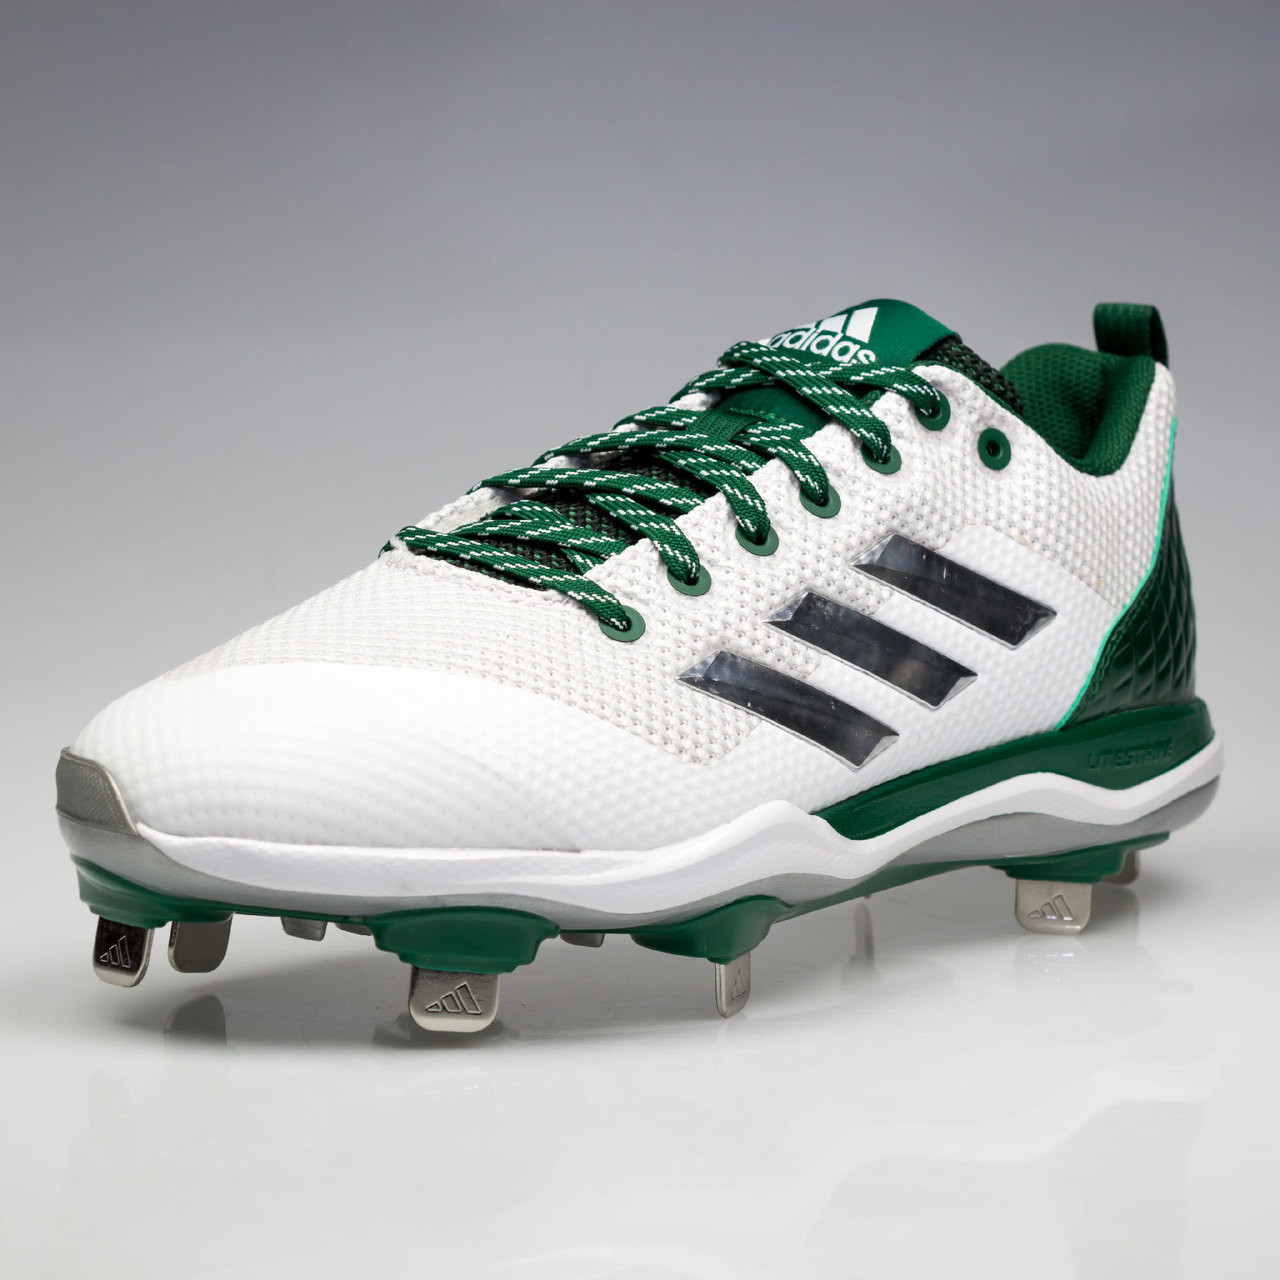 d547a450f9b ... Adidas Power Alley 5 Men s Baseball Cleats B39191 ...